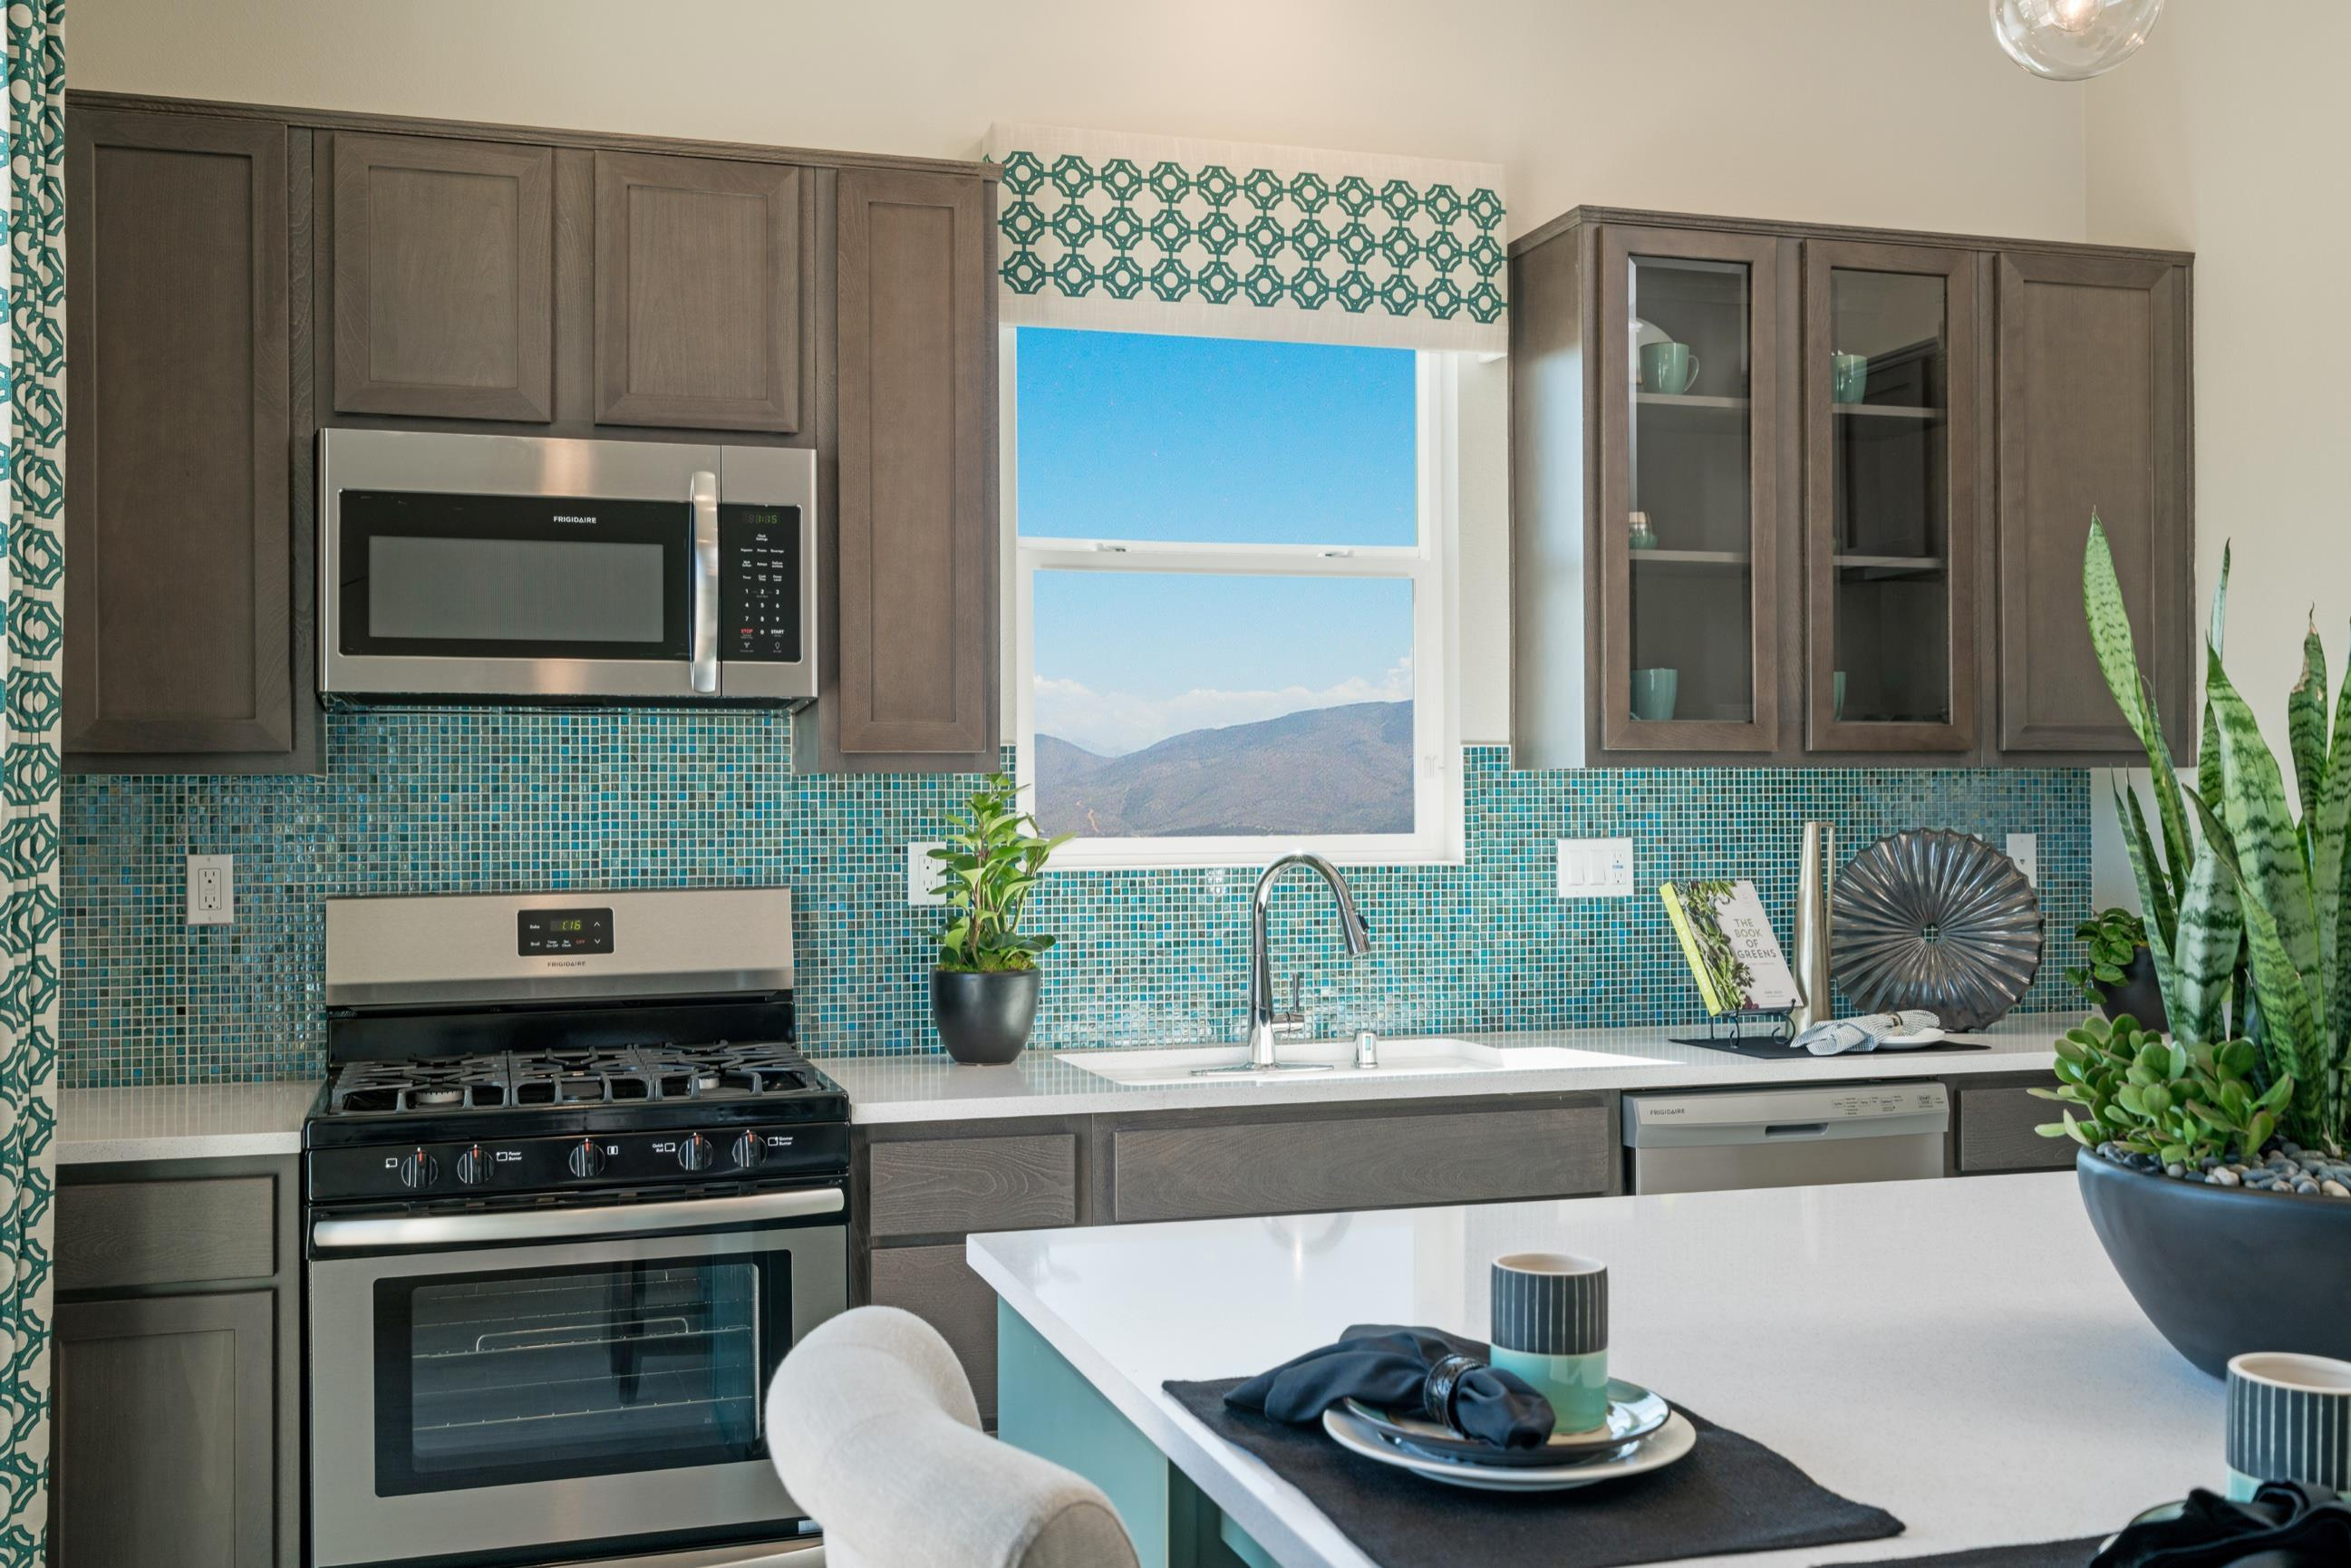 Kitchen featured in the Plan 2 By Heritage Building & Dev't in San Diego, CA